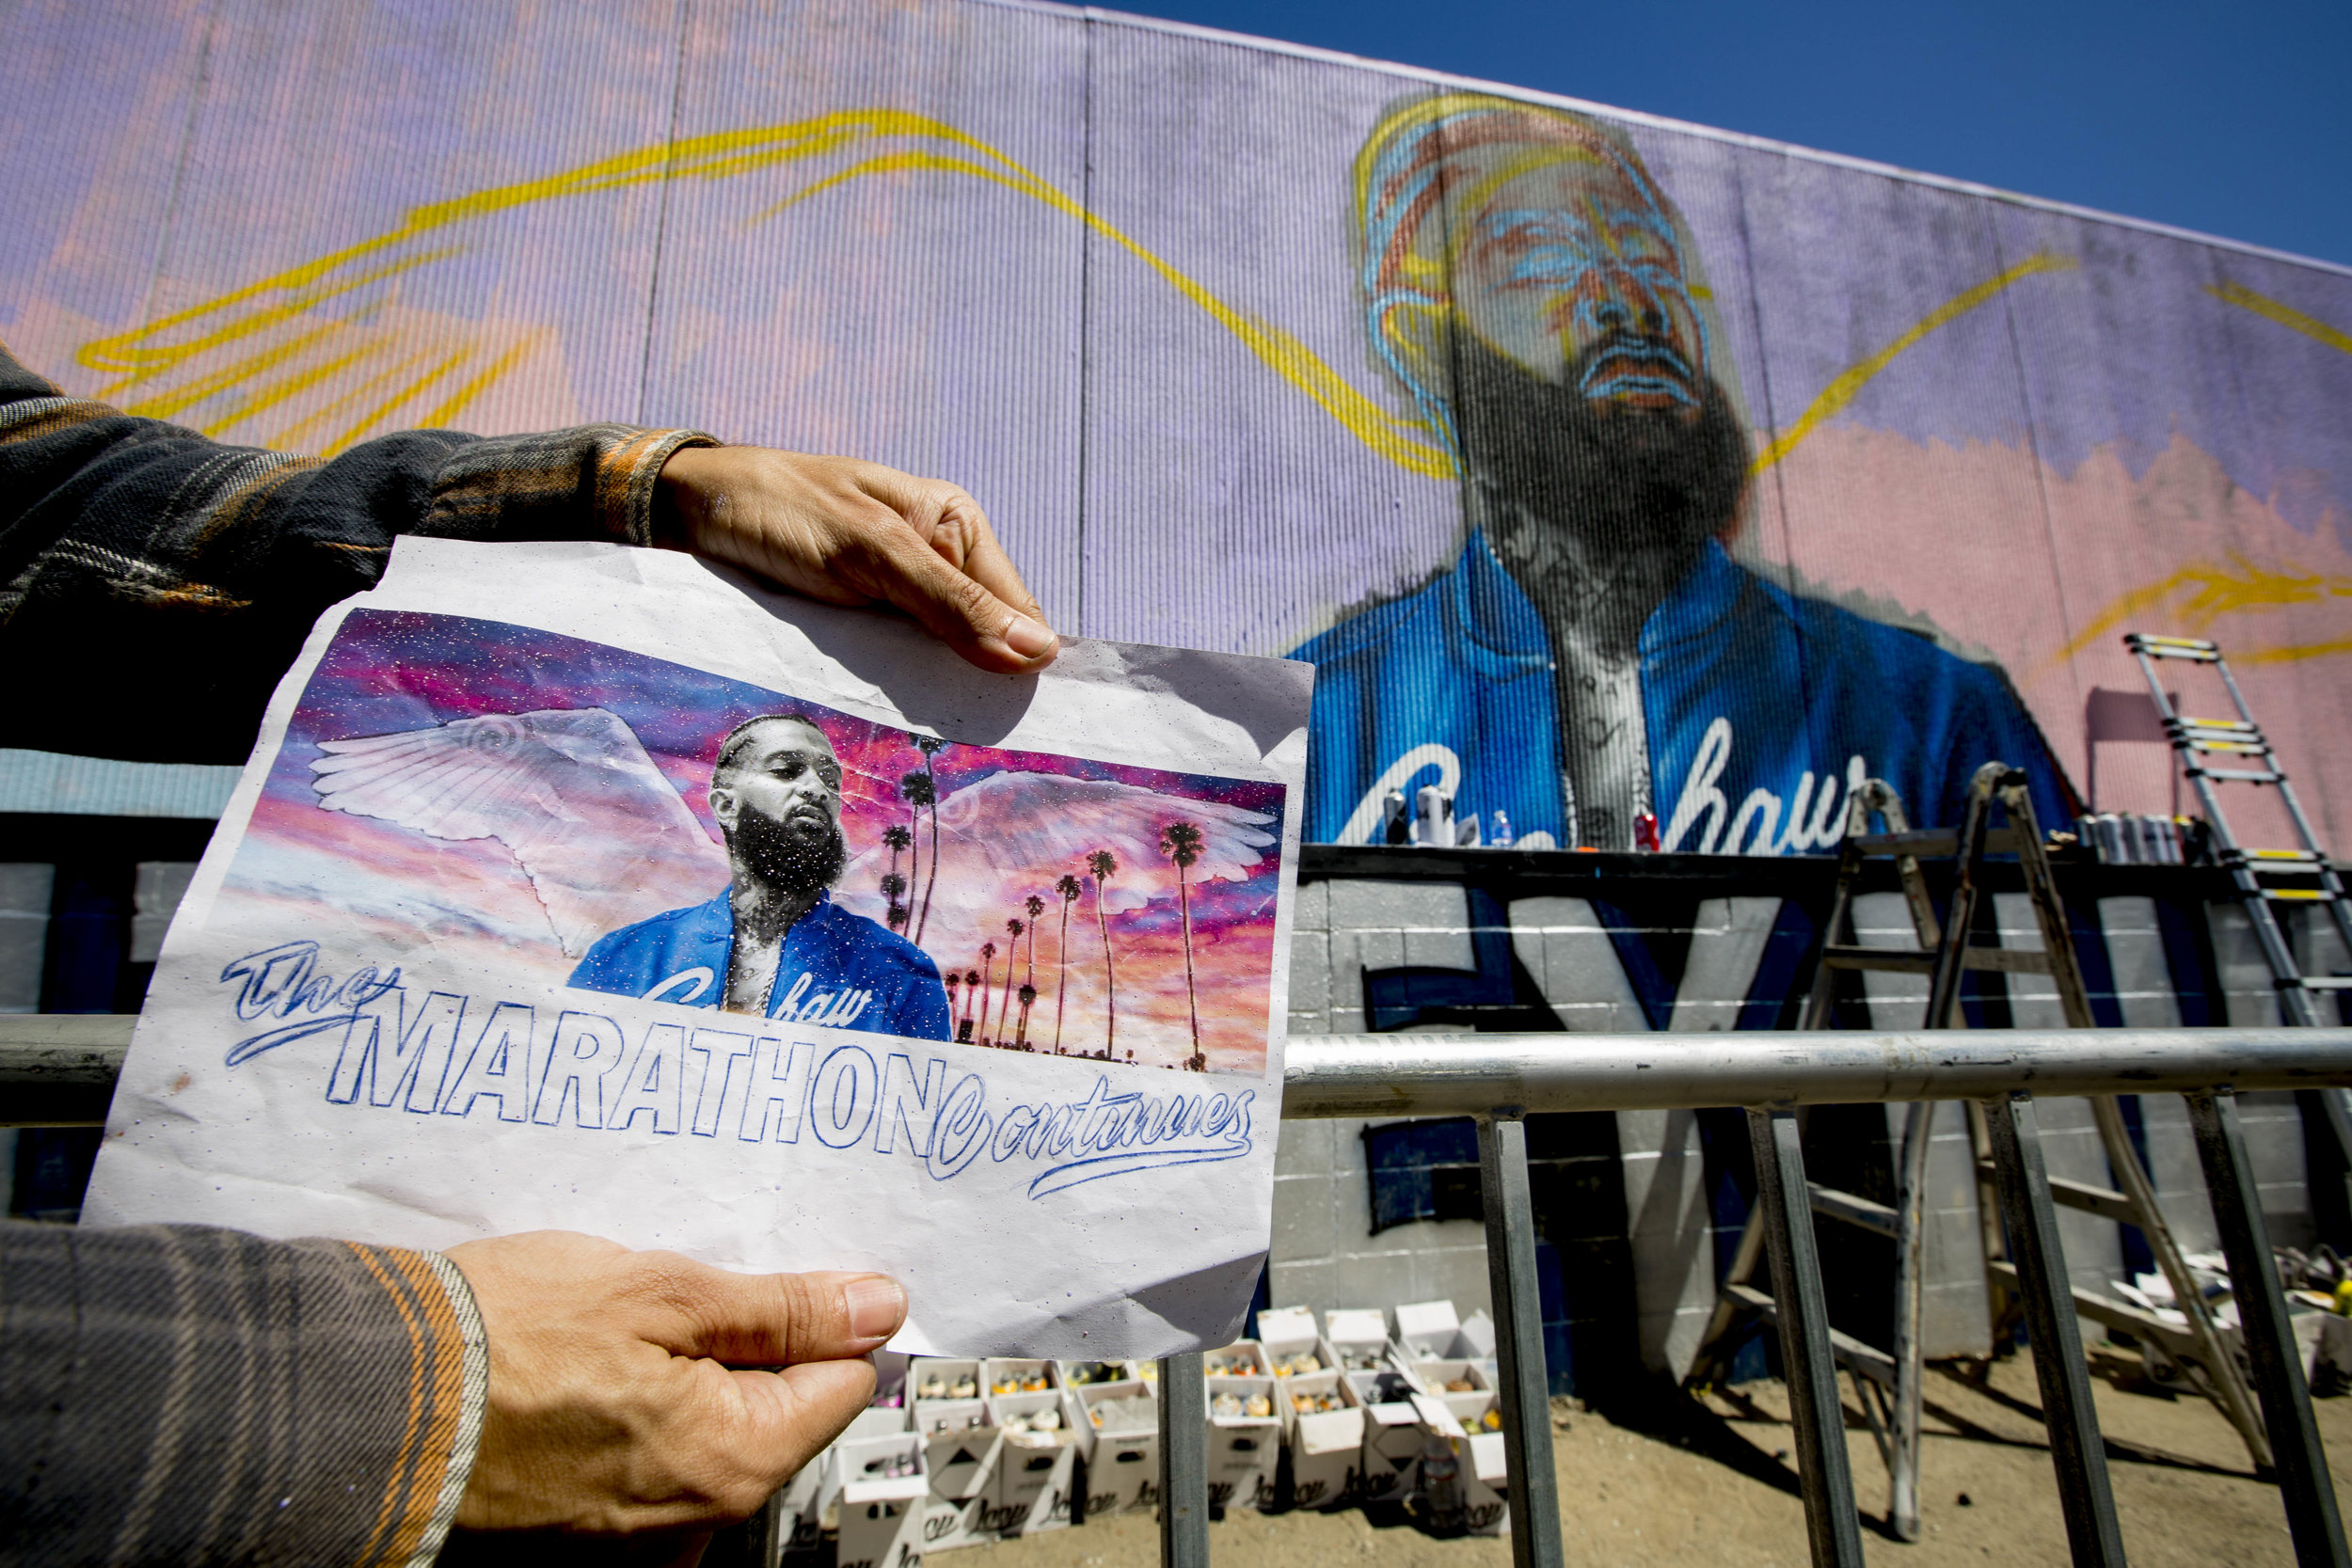 """Daniel Mateo and his crew pay their respects to Nipsey by painting a mural on a wall in the alley near The Marathon Clothing store off of Slauson Avenue and Crenshaw Boulevard in Los Angeles, California on April 6, 2019. Mateo said that it all started when he shared the idea with Nipsey's family, which they really loved, allowing him to start production. The mural is a labor of love and respect, by Mateo, as he responded by sharing that he is there doing it for free and not charging for the work. He said, """"We gotta show our respect for Nipsey."""" When asked if he sees himself embracing any of the principles that Nipsey was popularizing, Mateo said that, """"In a way we're all living his life. We are daily hustling, grinding. Hopefully we can take some of his knowledge and help out others, whether it be the community, small organizations. Anything that can pretty much help each other out. Yea, I'm pretty sure ill be doing that."""" (Jose Lopez)"""